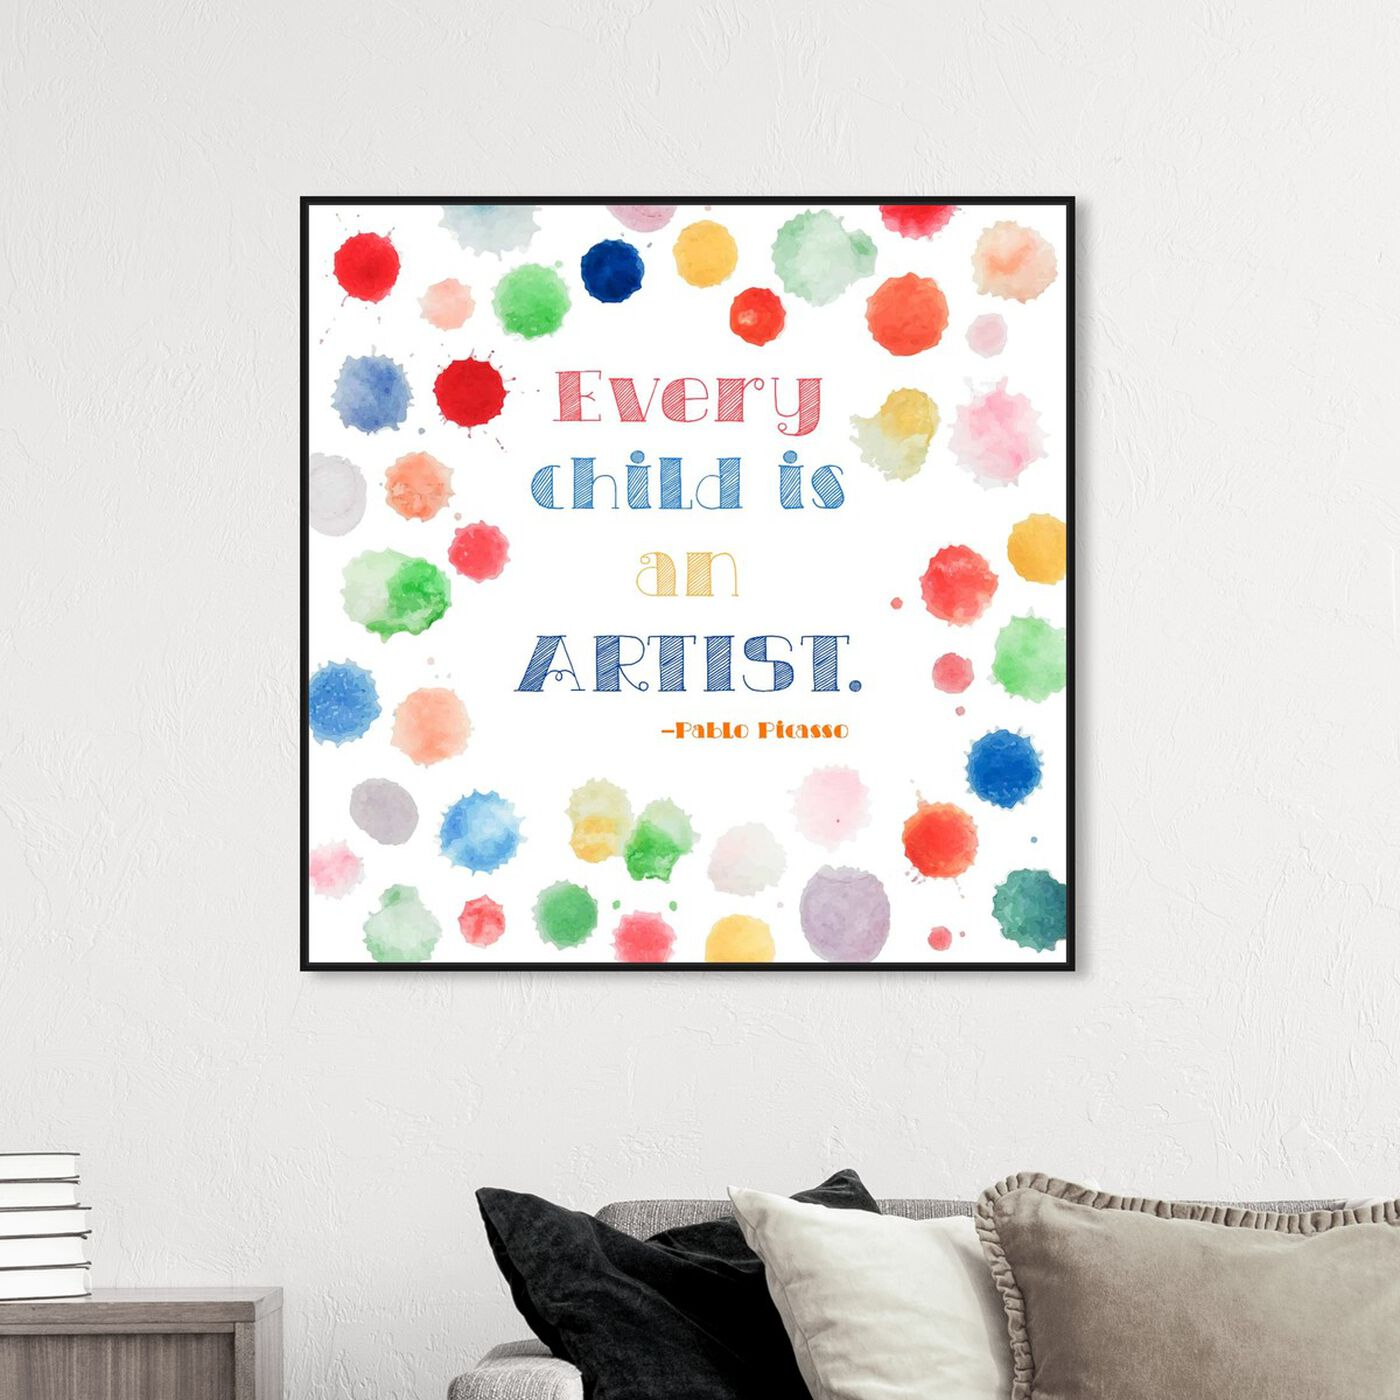 Hanging view of Every Child is an Artist featuring typography and quotes and family quotes and sayings art.